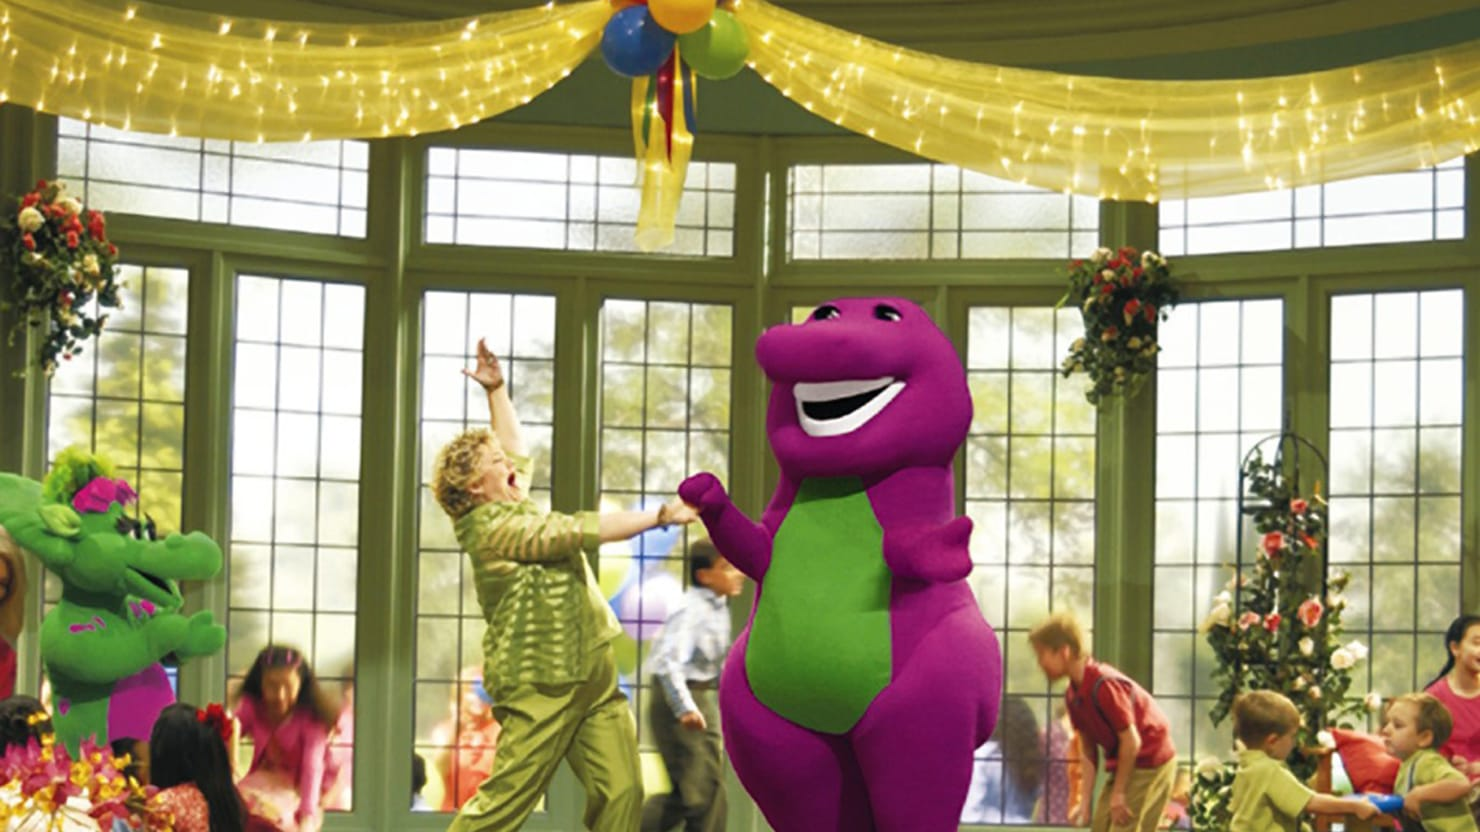 World Auto Sales >> Son of 'Barney' Creator Arrested